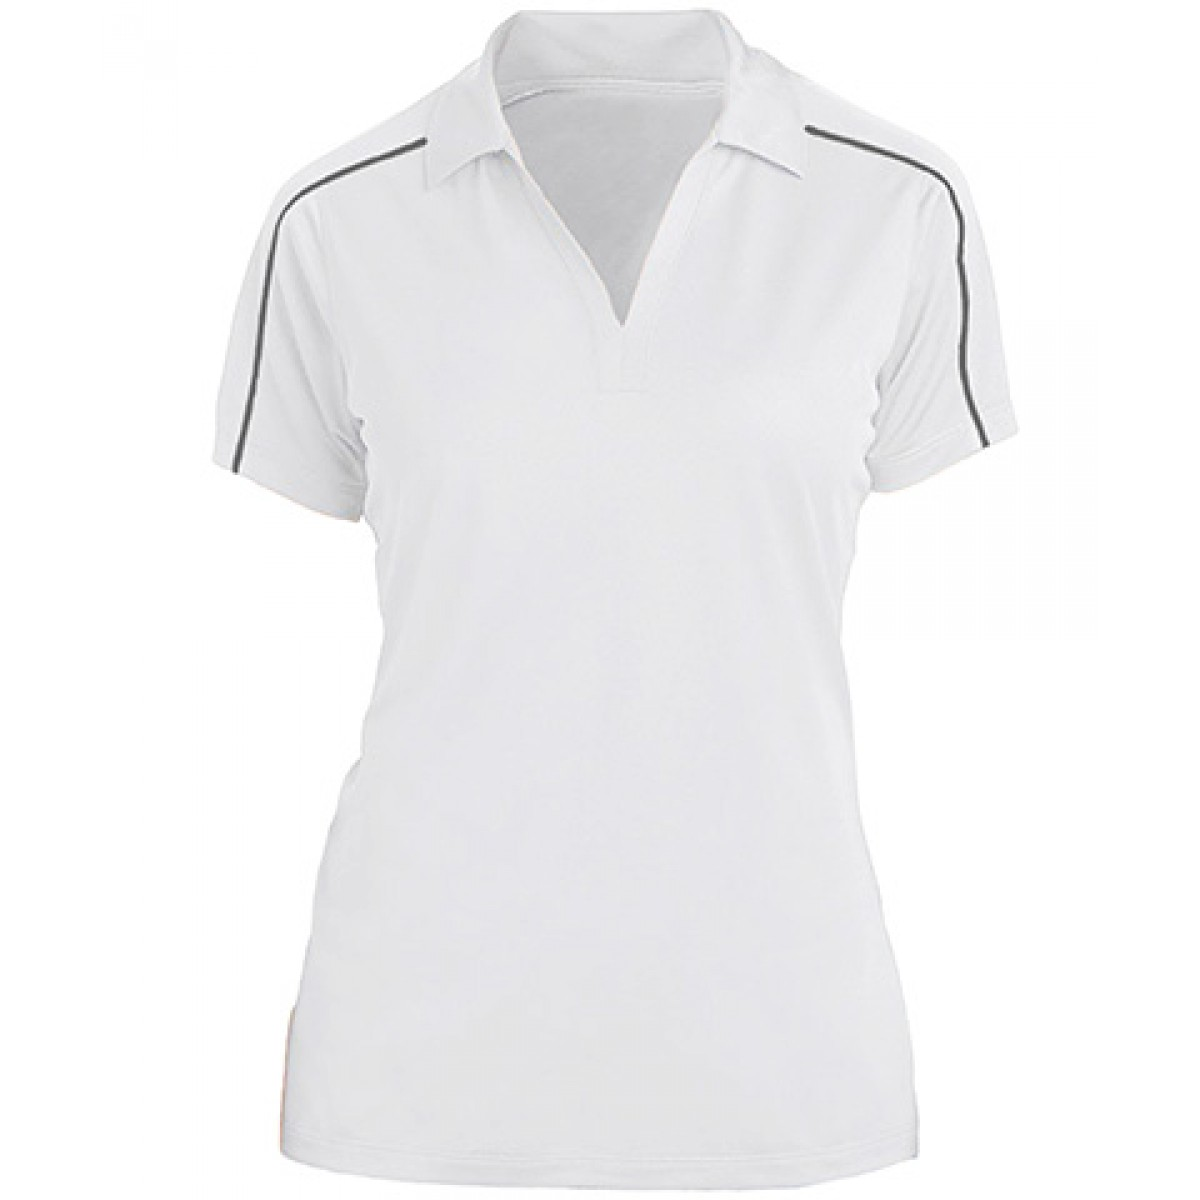 Sport-Tek Womens Piped Short Sleeve Polo -White-XL